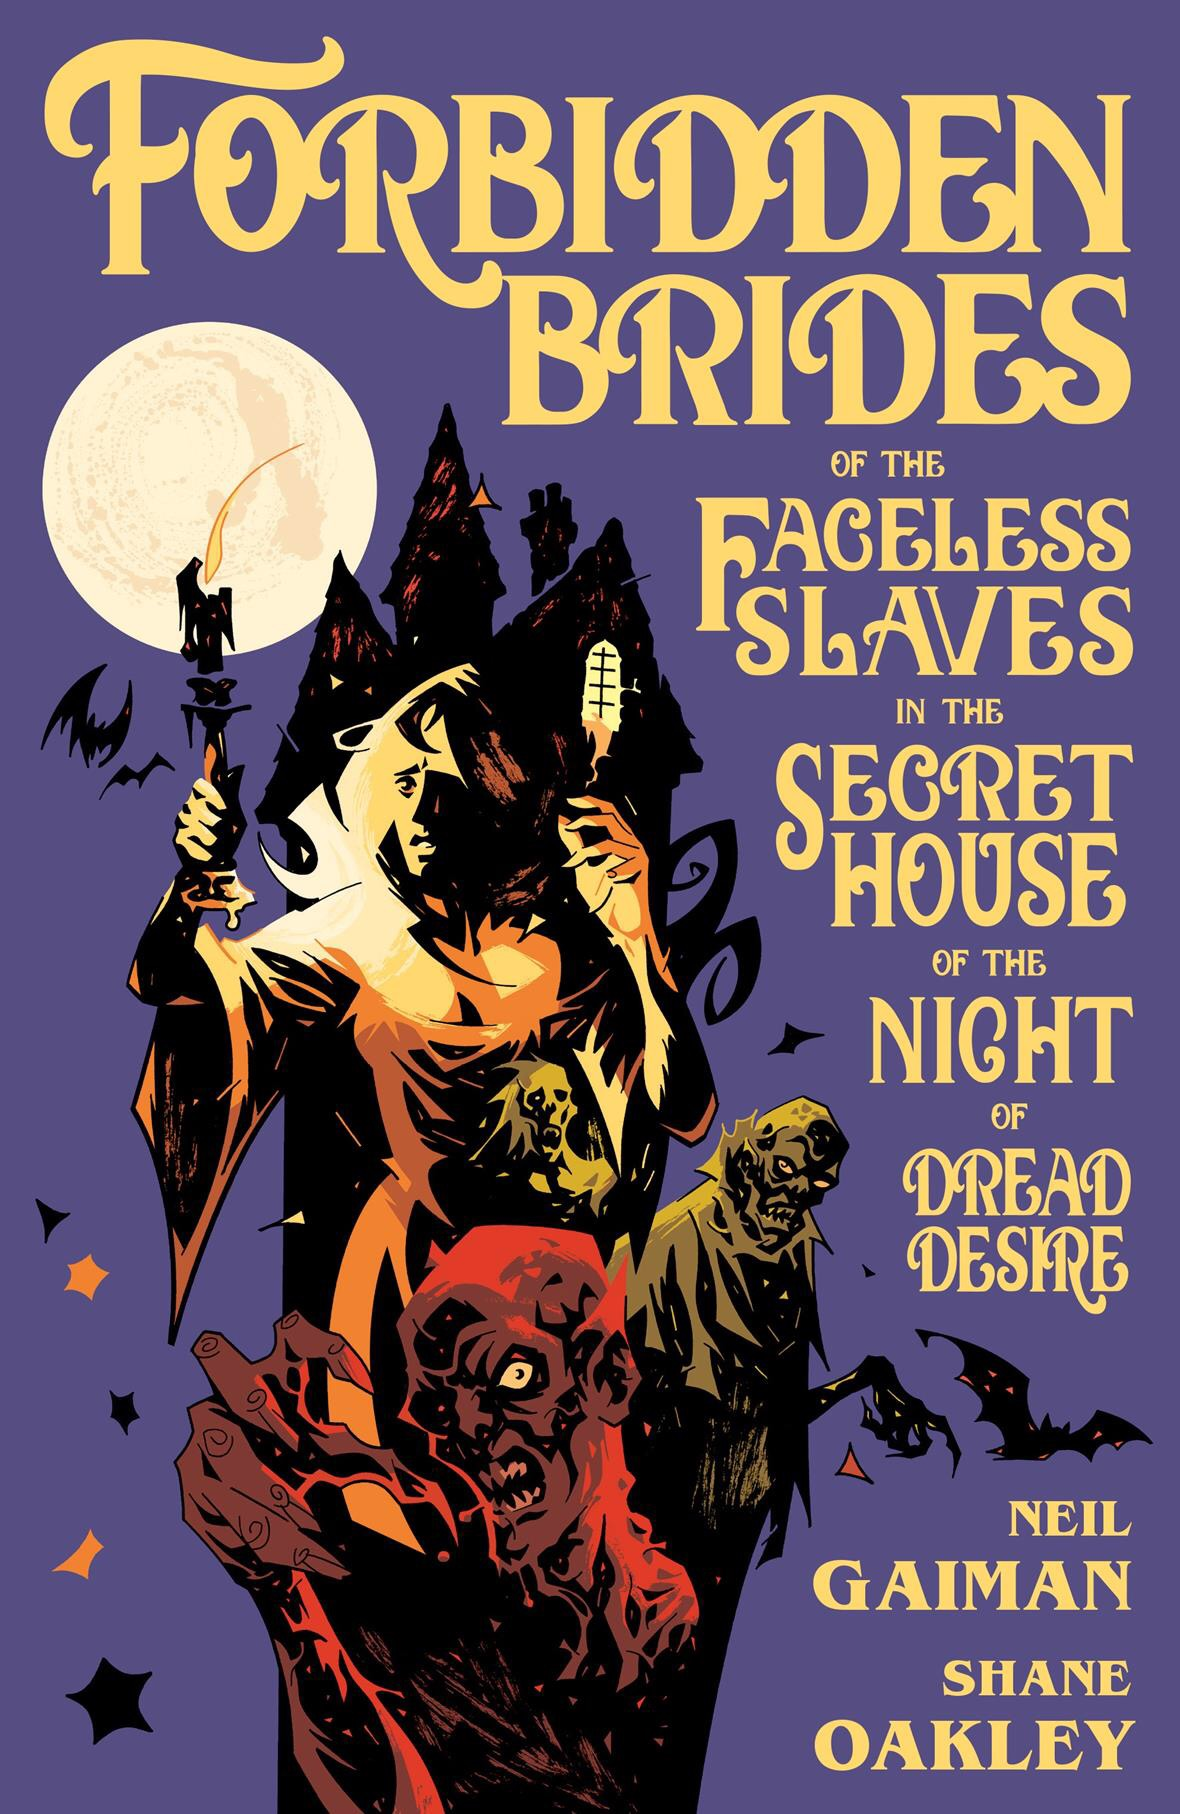 Neil Gaiman's Forbidden Brides - Cover